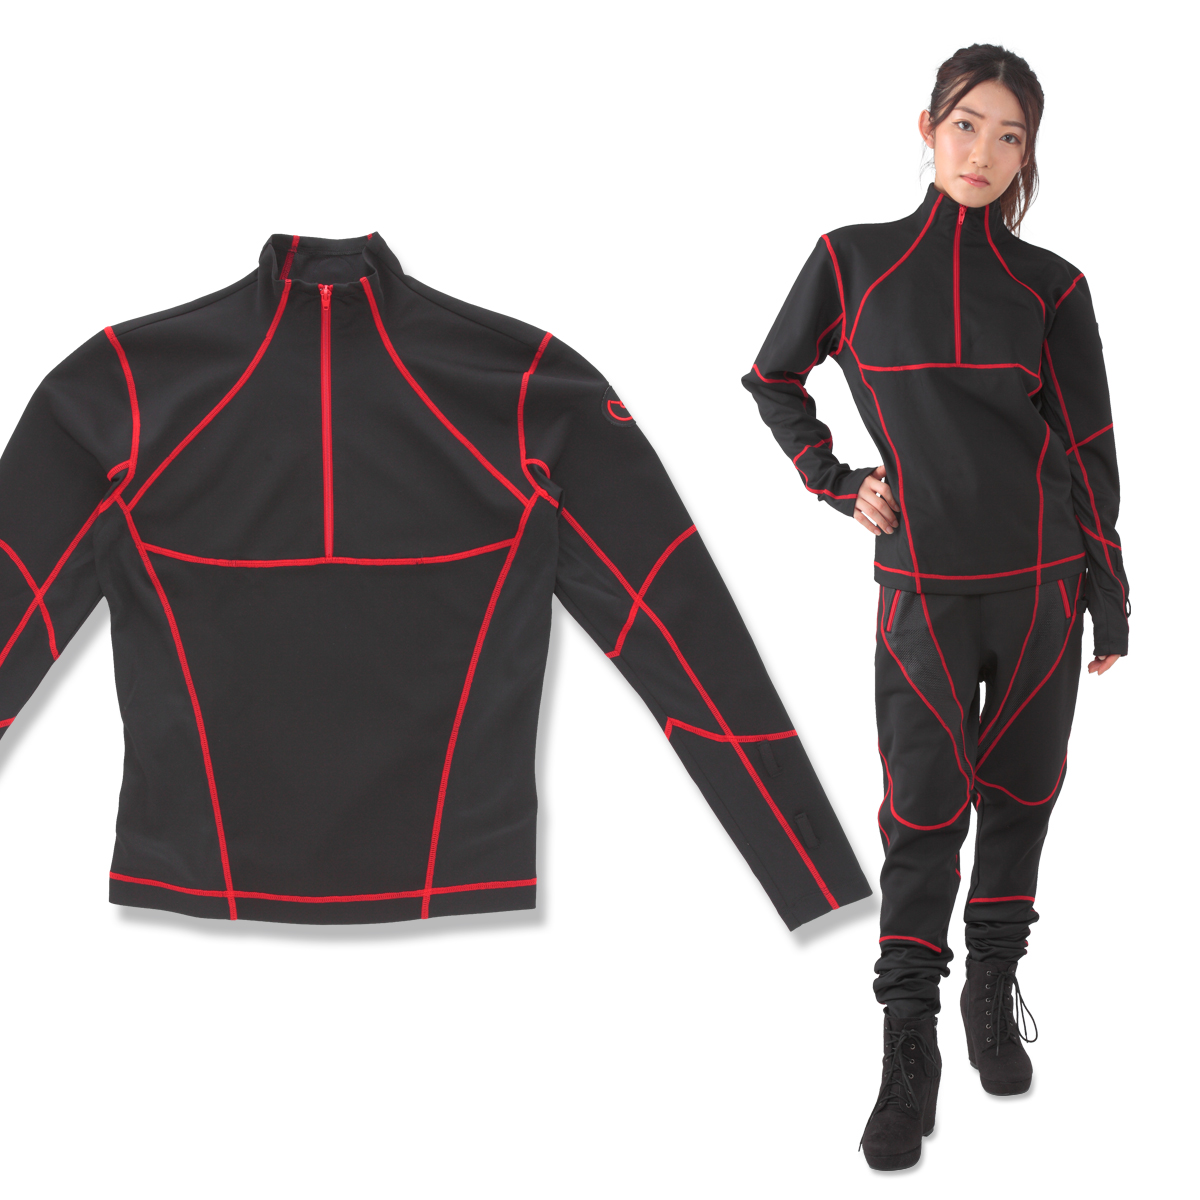 KAMEN RIDER ZI-O Cosplay Long sleeve T-shirts (Gates)